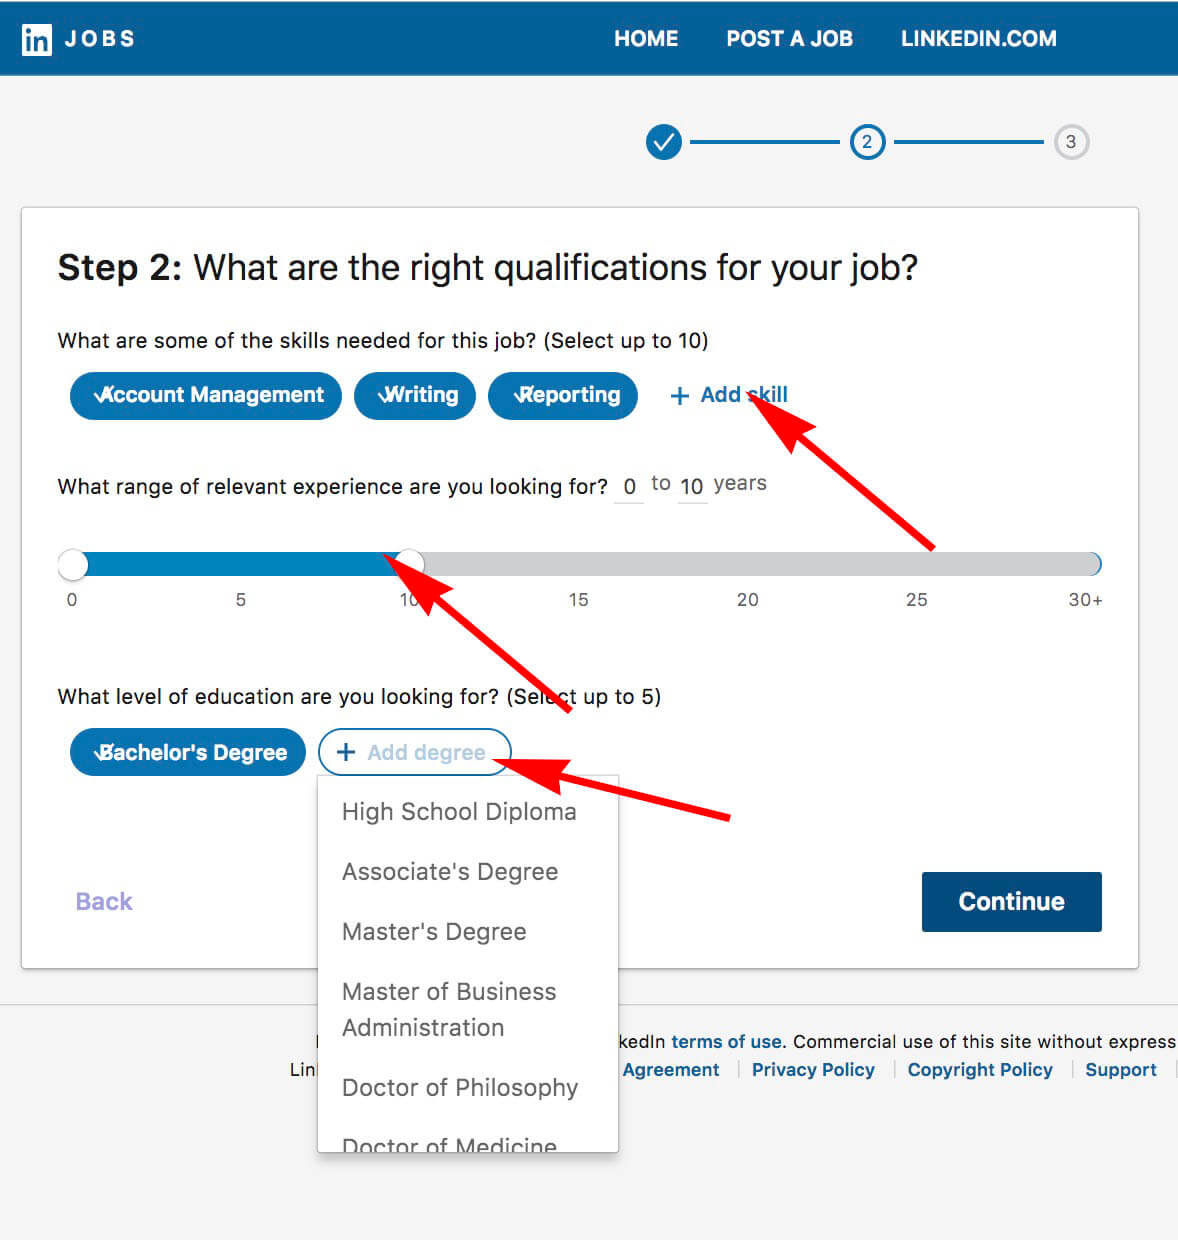 How to post a job on Linkedin - Choose hiring qualifications